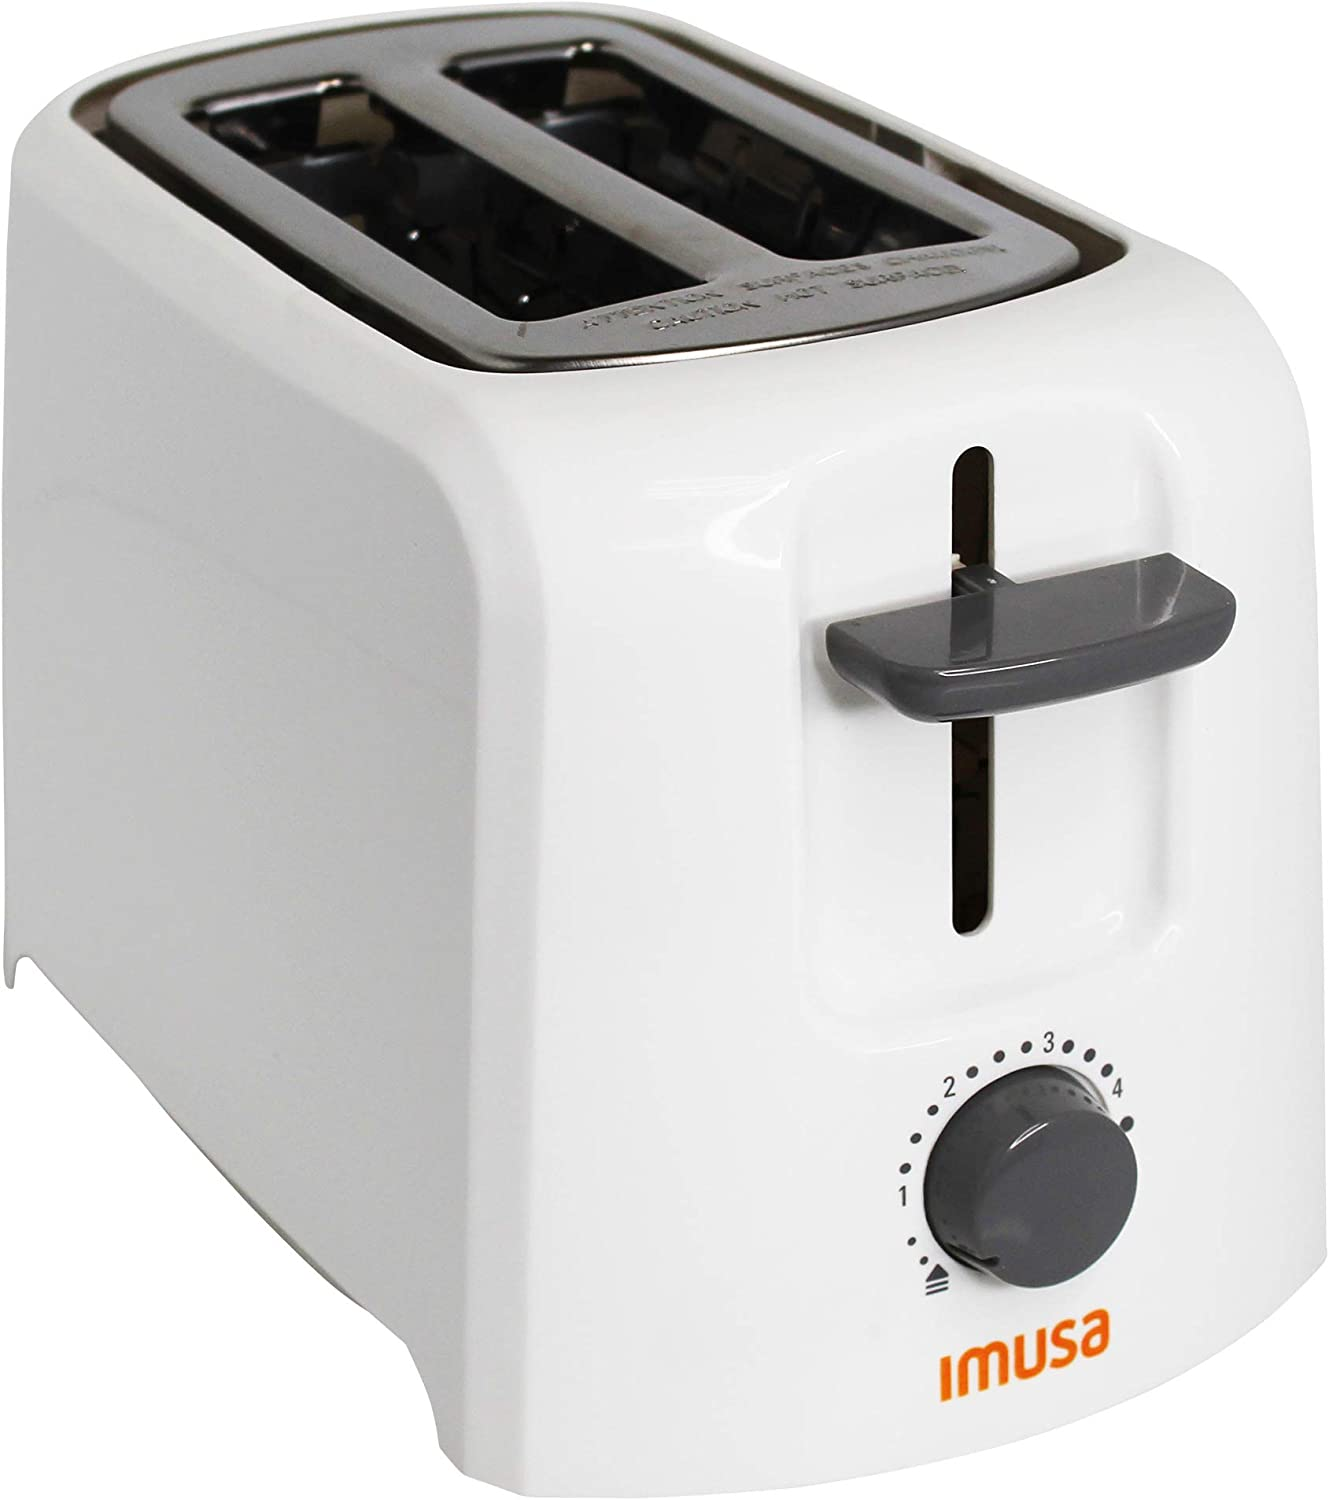 Imusa USA GAU-80120W Electric Basic Toaster 2 Slices 800 Watts, White